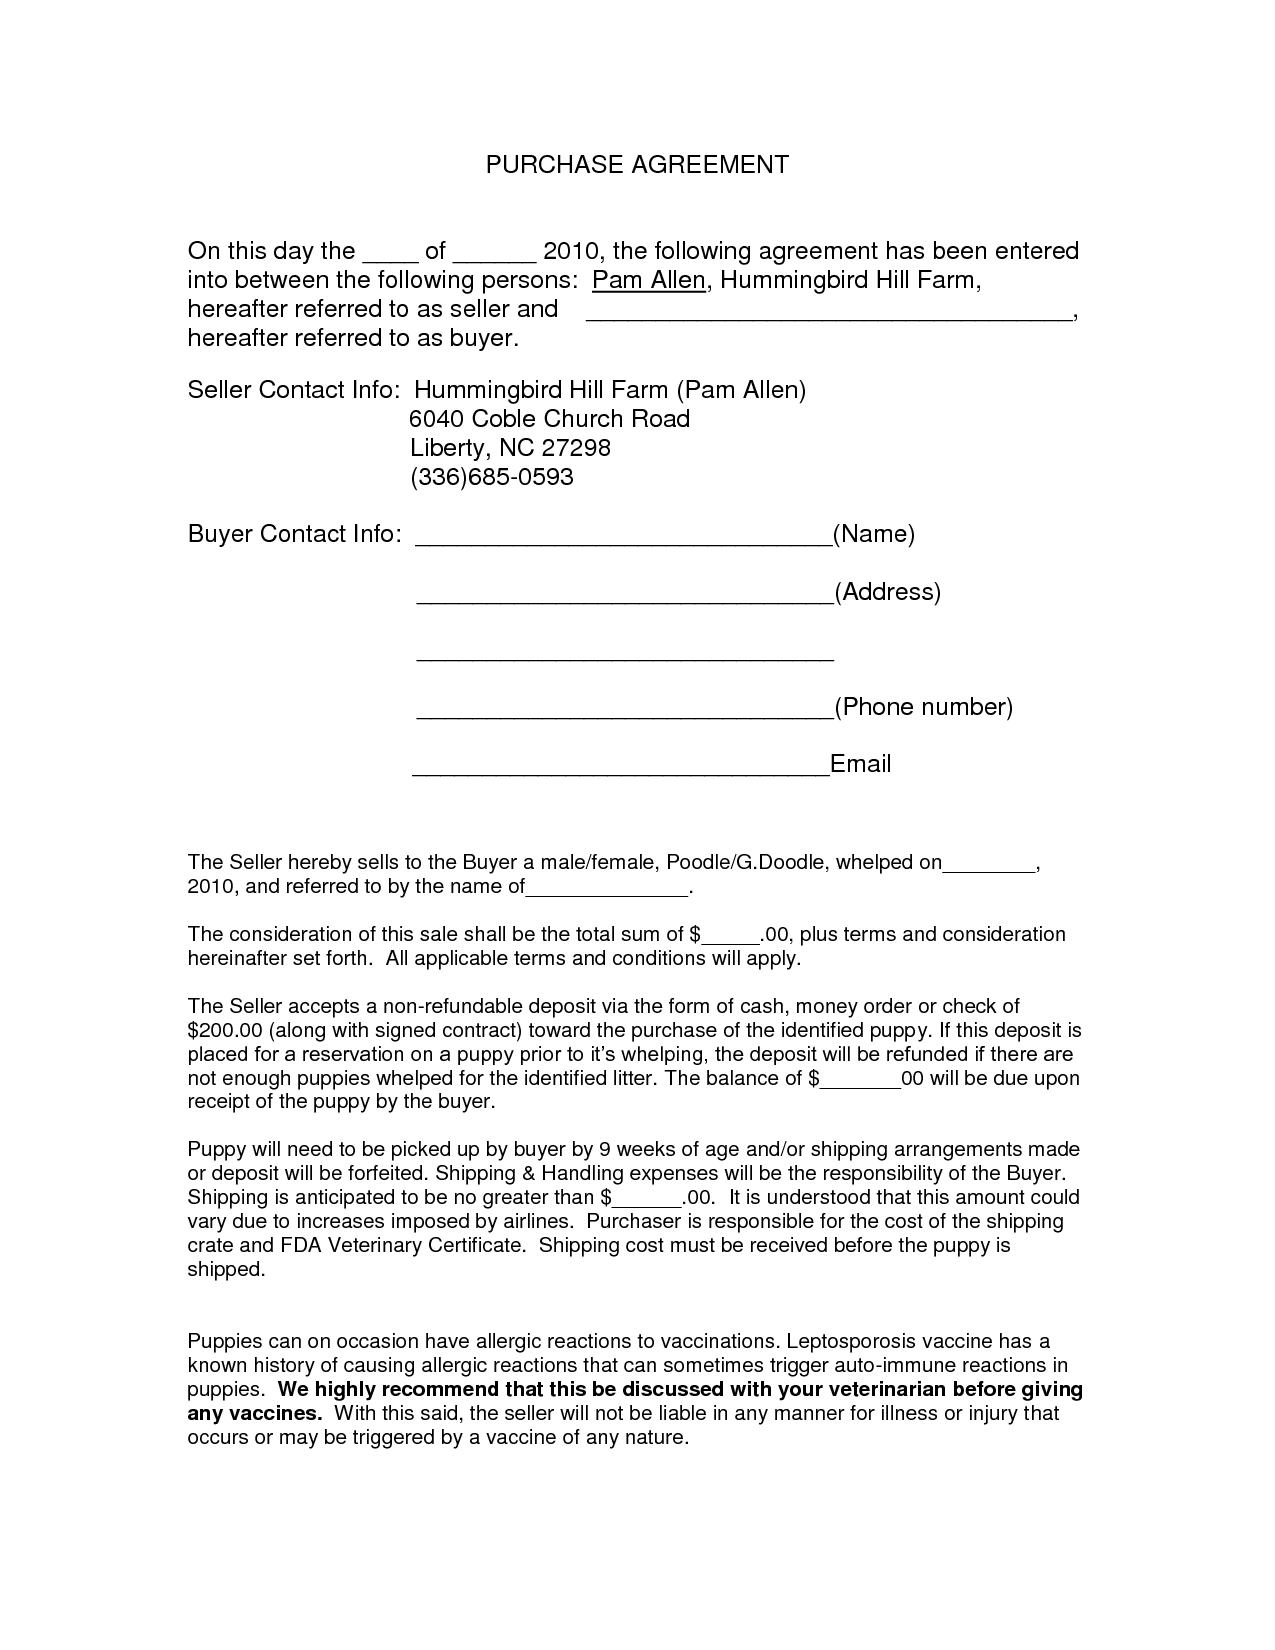 California Real Estate Purchase Agreement Form Gallery Vehicle